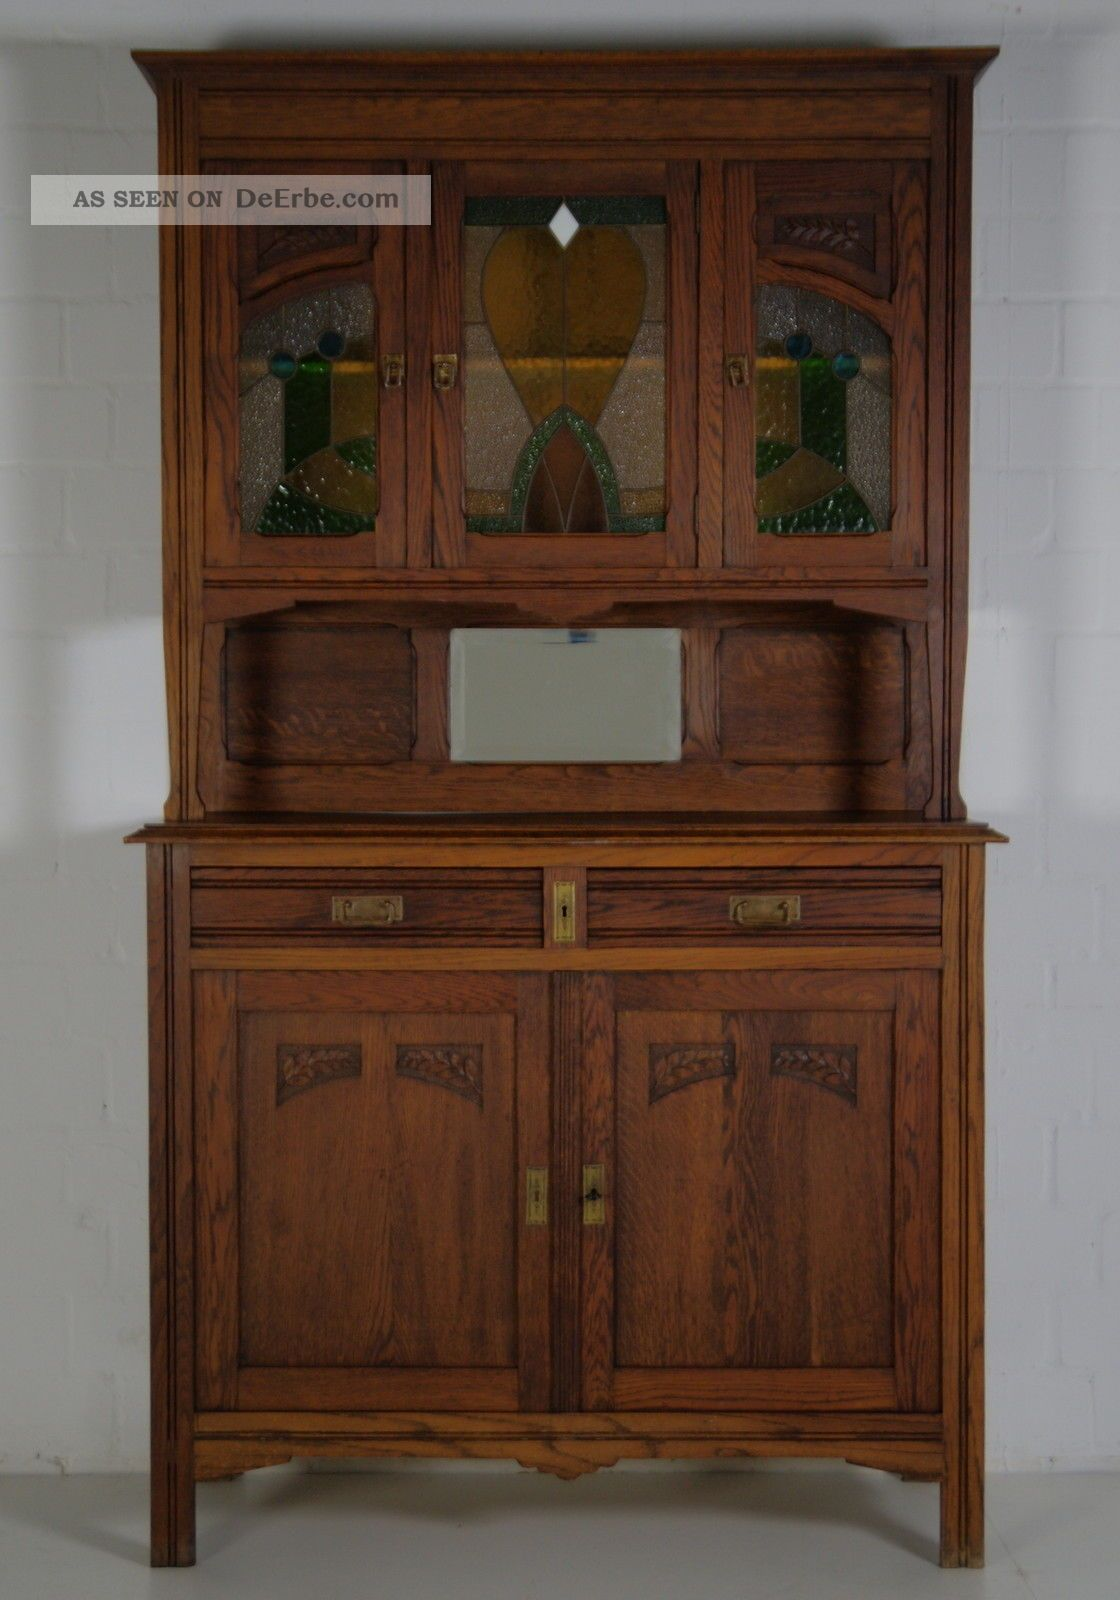 antik buffet schrank jugendstil vitrinenschrank eiche. Black Bedroom Furniture Sets. Home Design Ideas